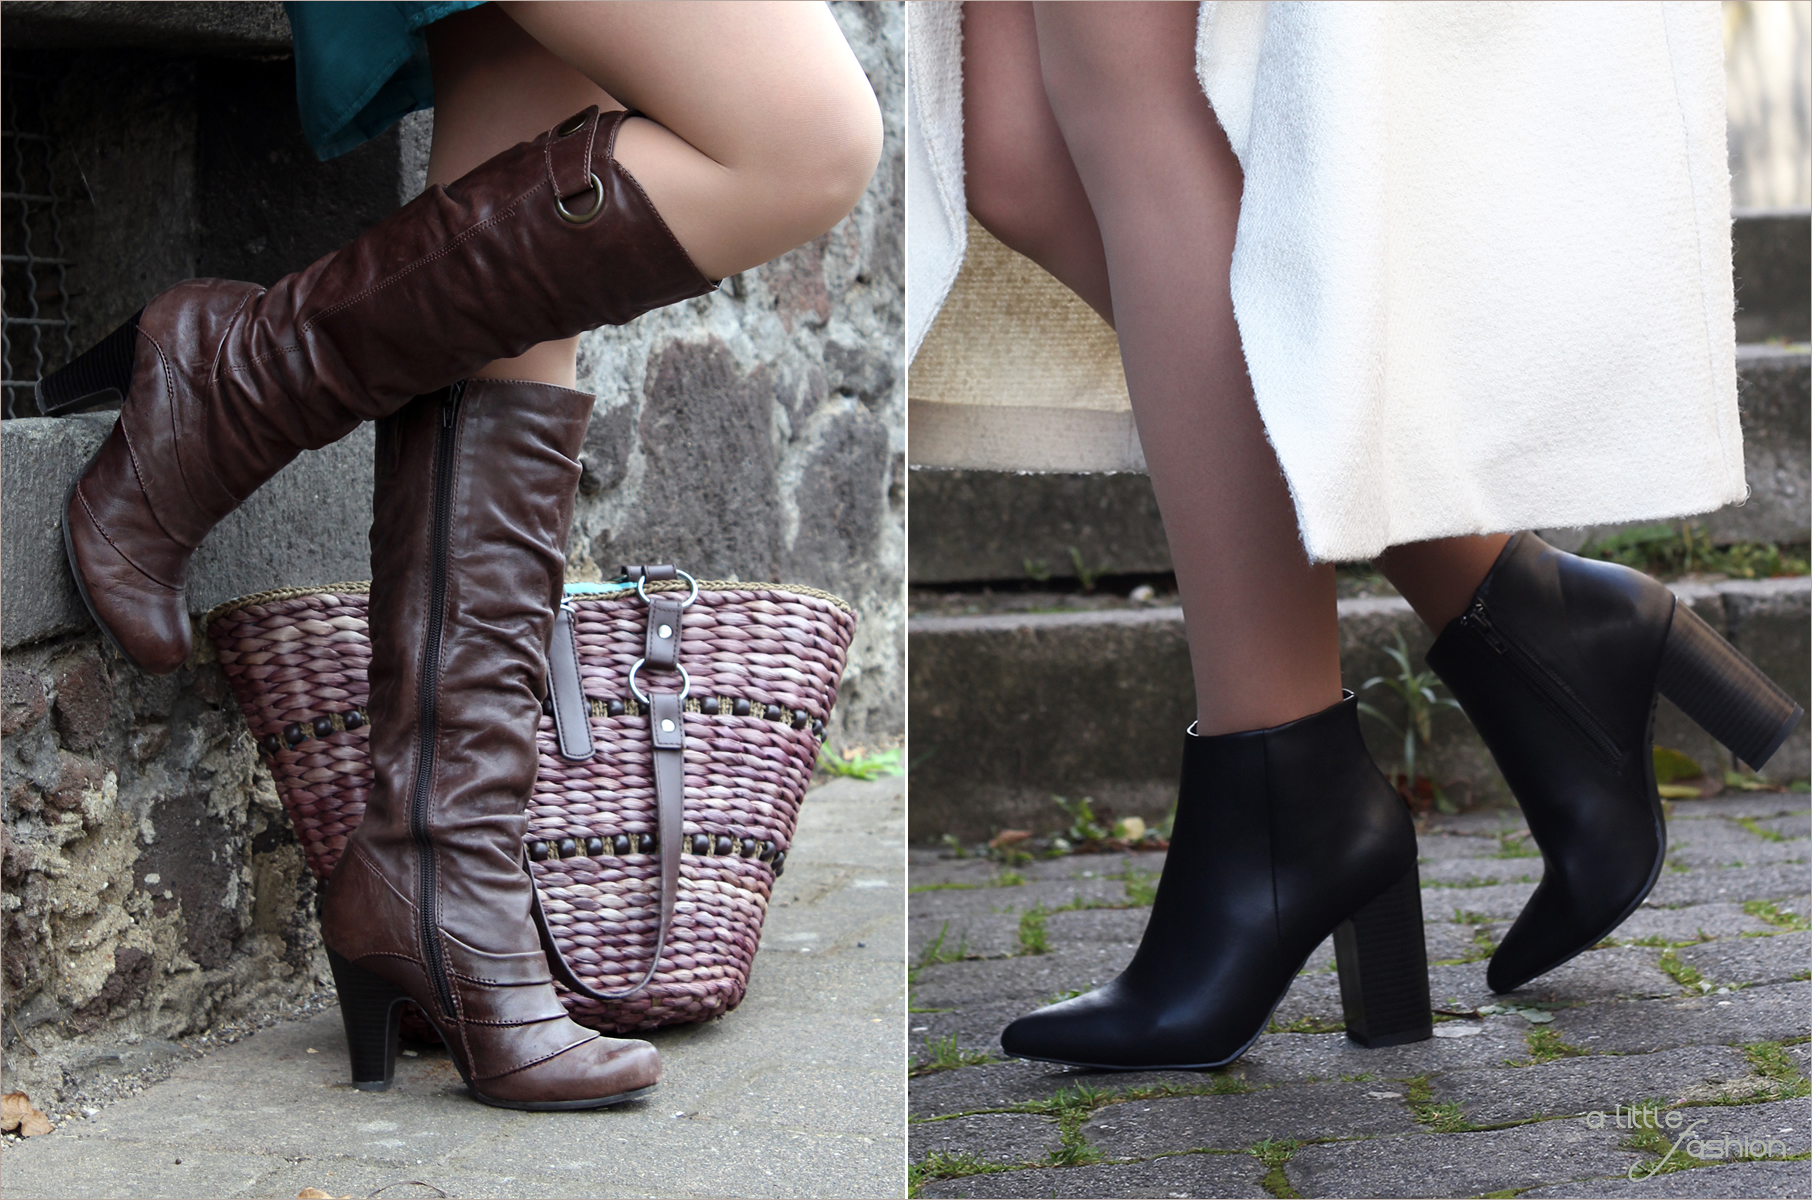 fashion_how-to-wear_schuhe_herbst-winter_alltag_shopping_buero_chic3